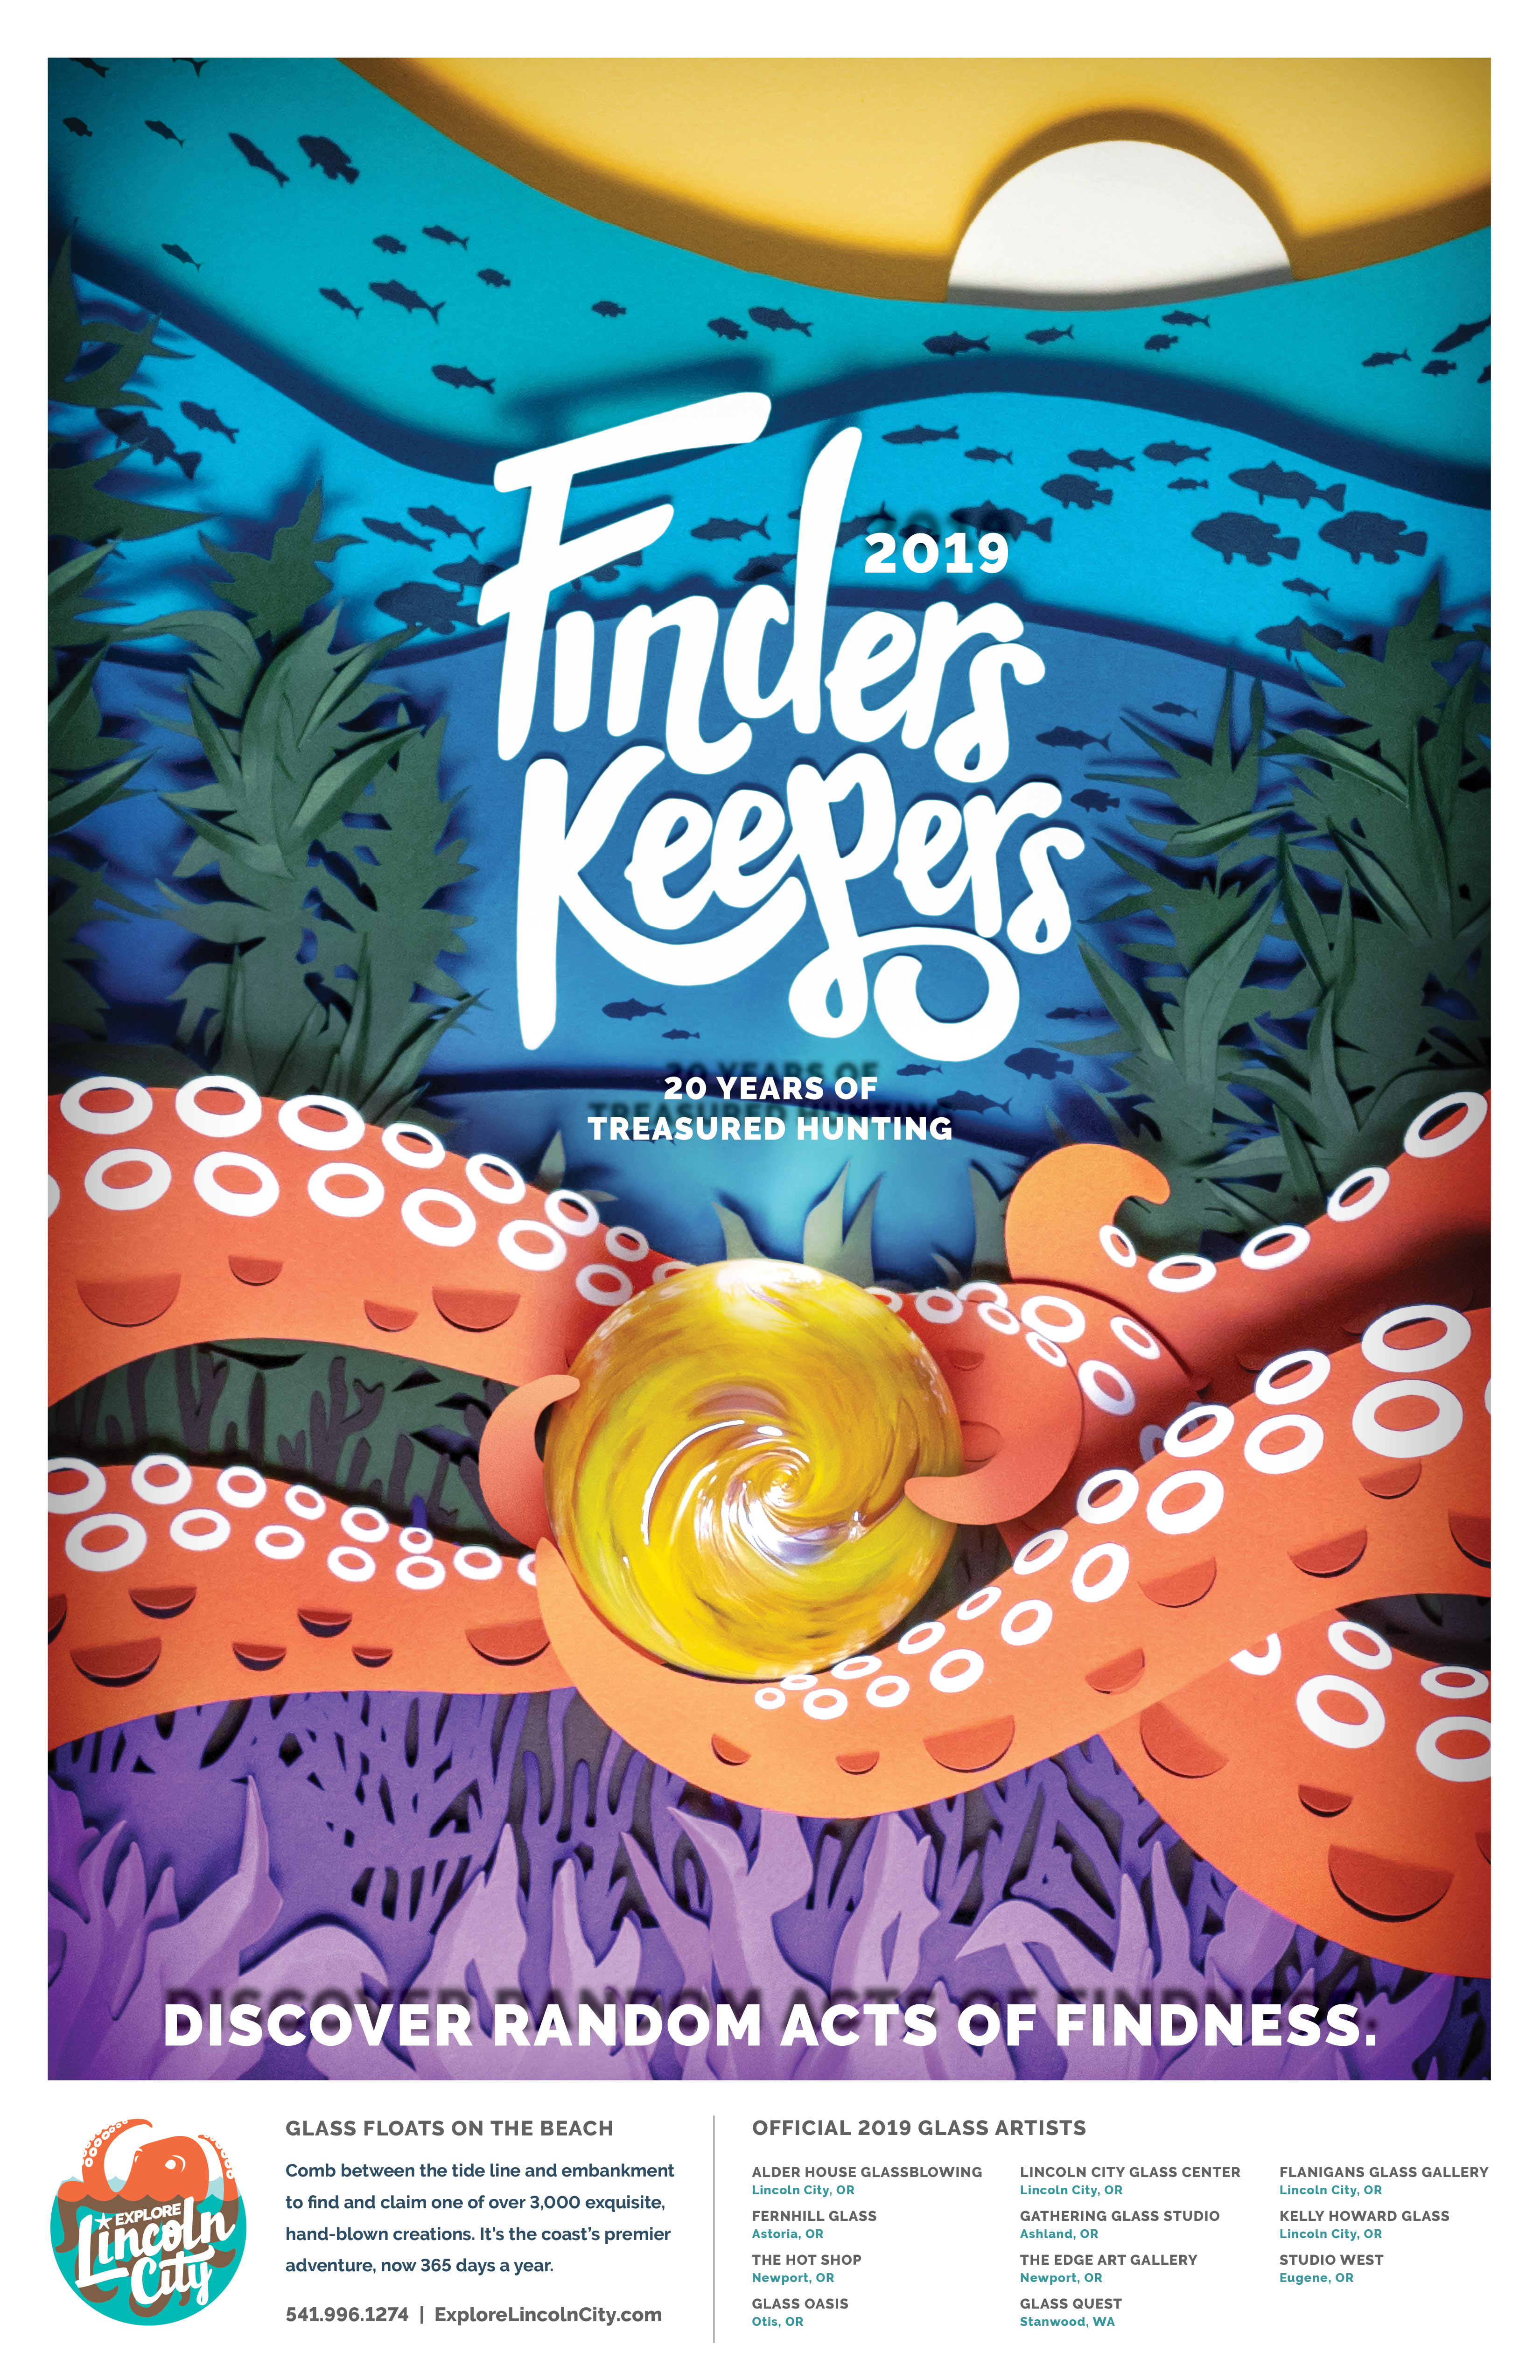 New Finders Keepers Poster For 2018/2019 Season